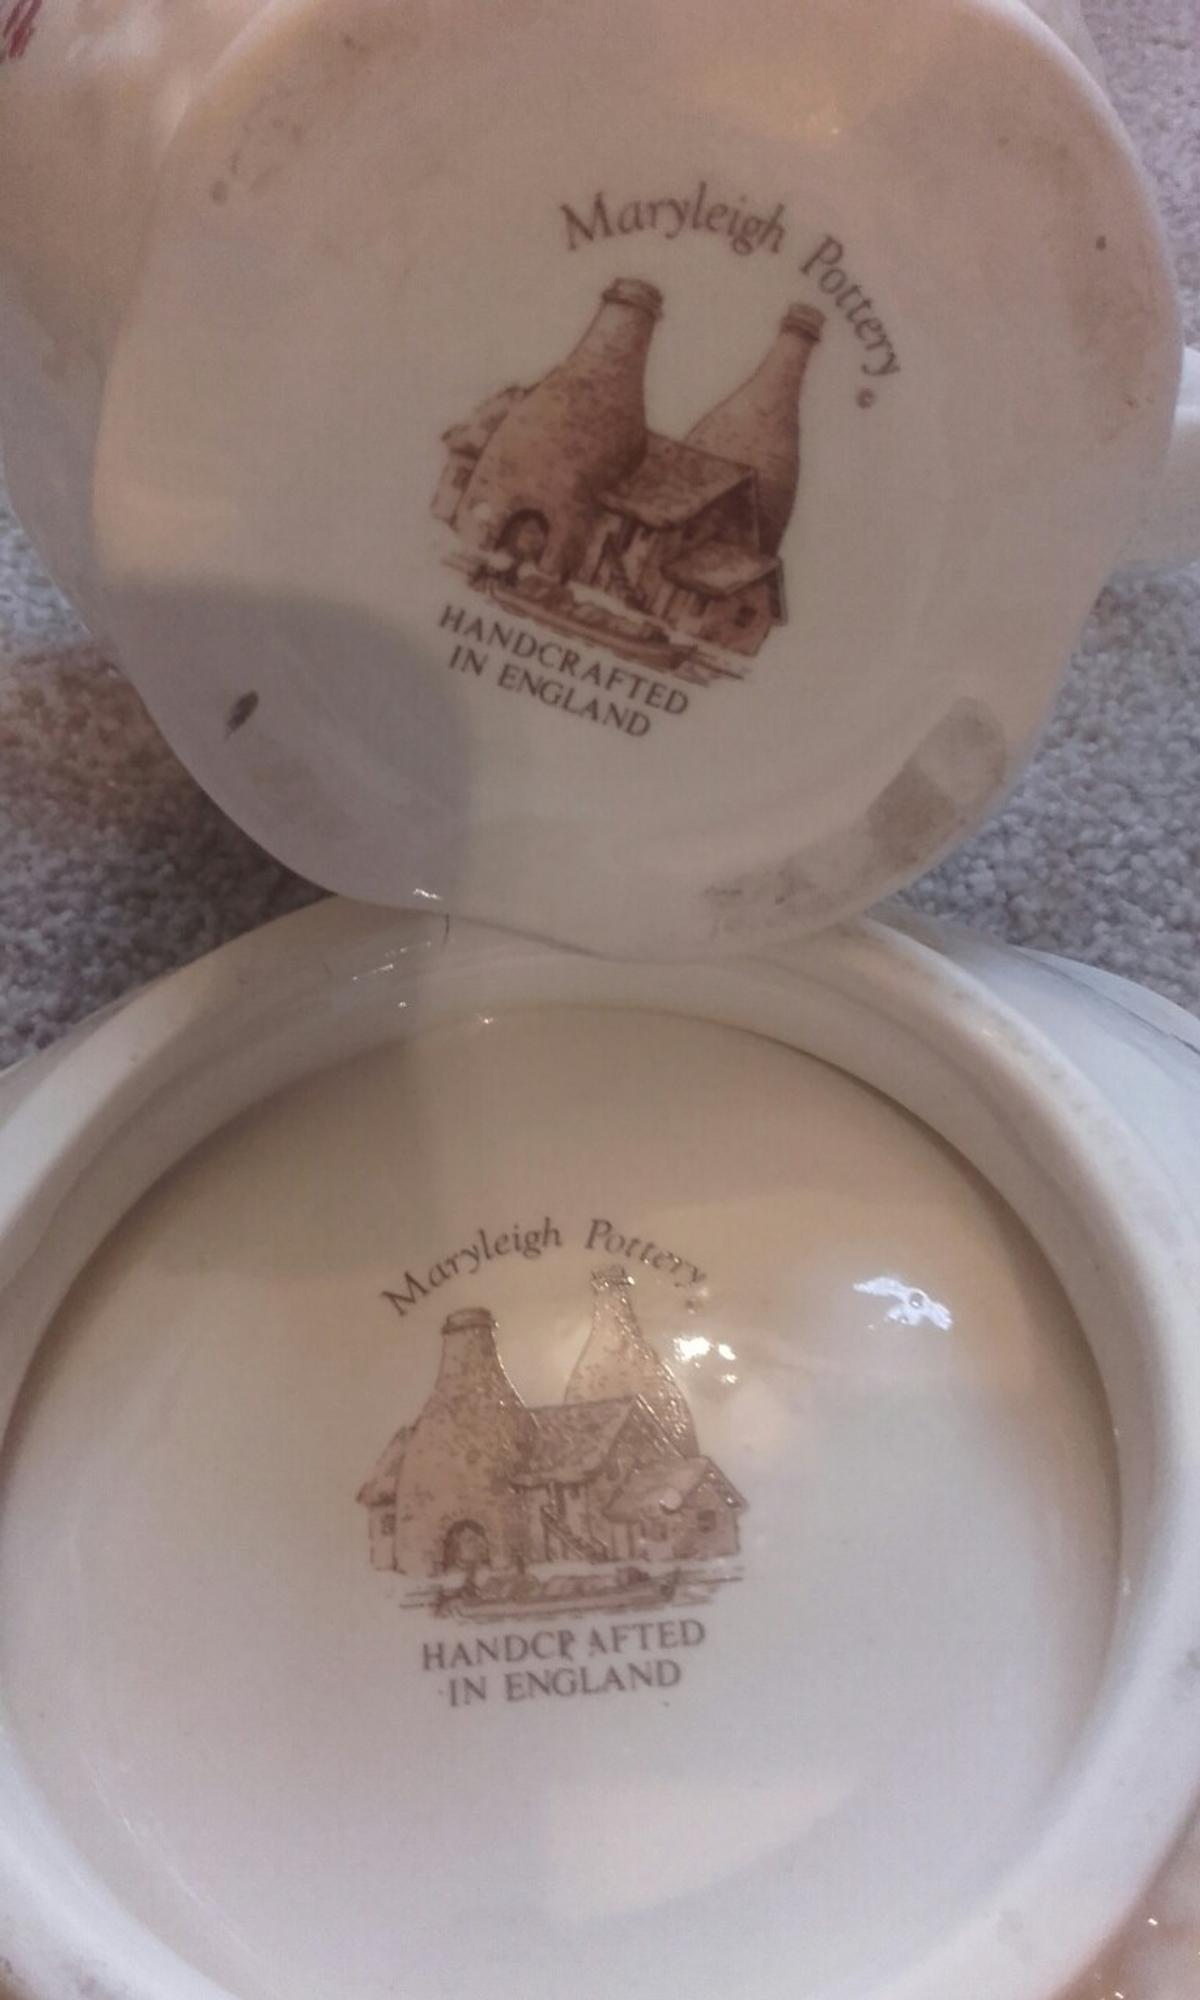 Washbowl & jug maryleigh pottery in WF15 Kirklees for £10 00 for